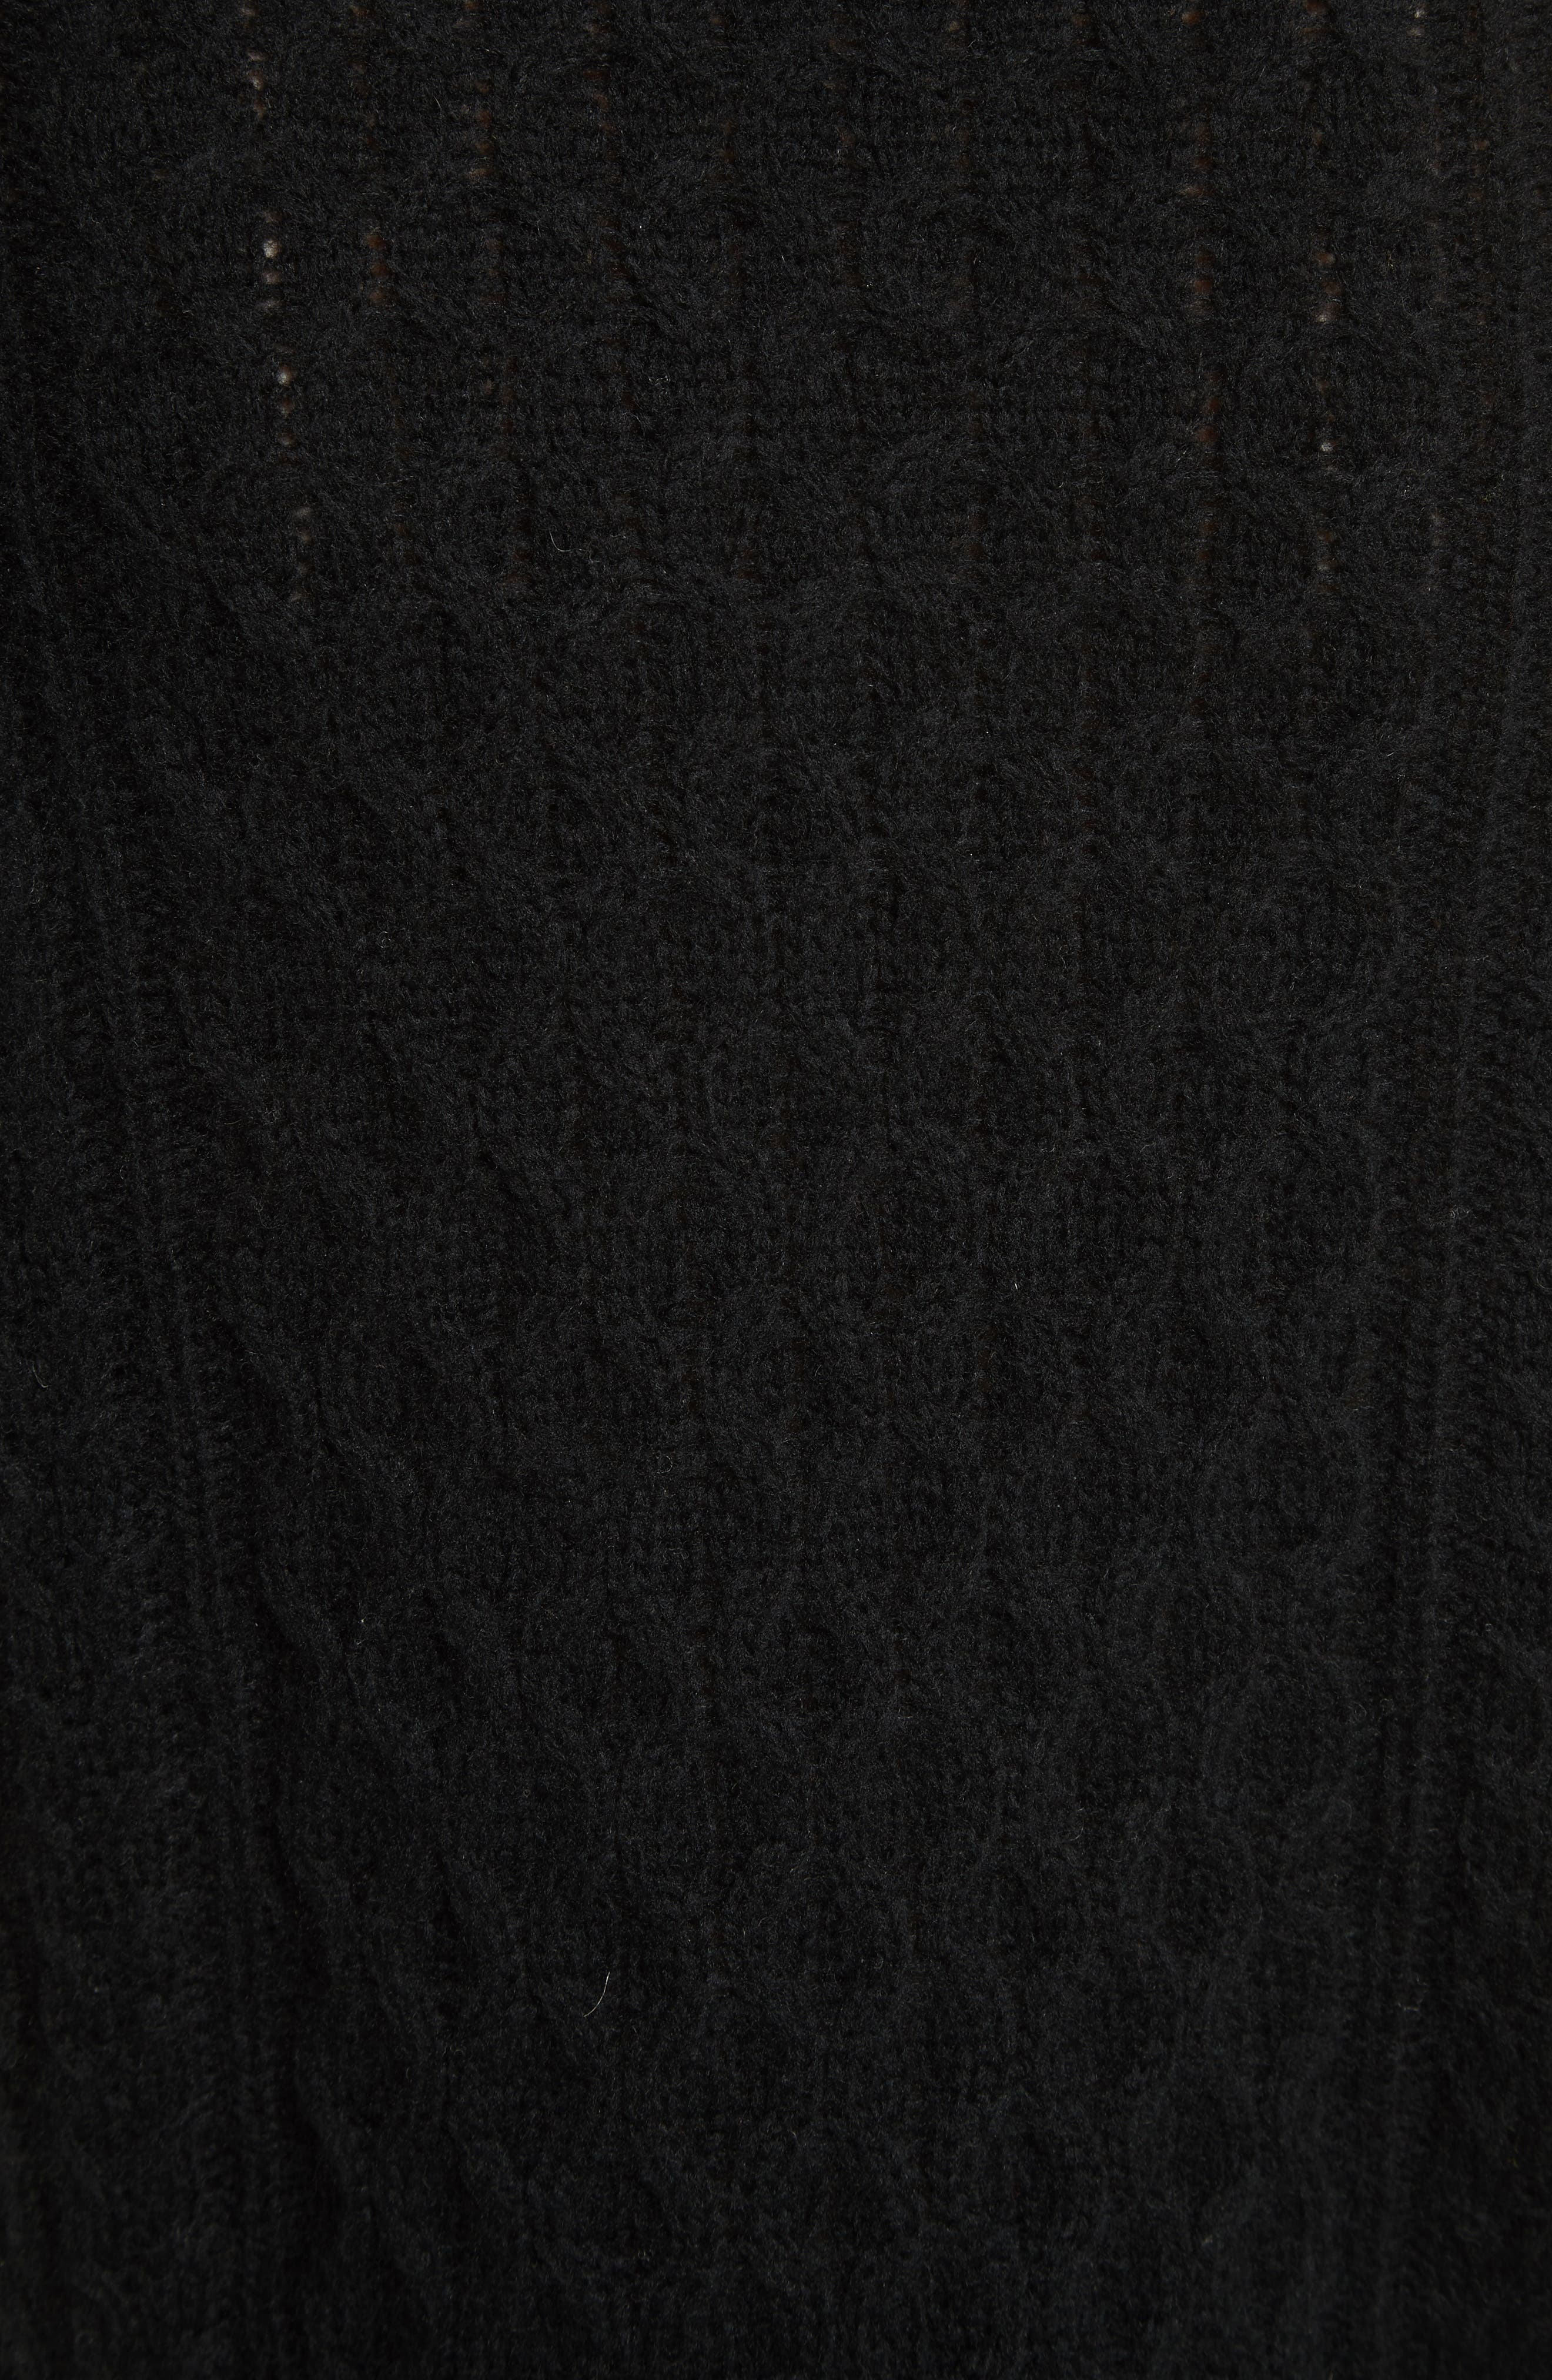 Cold Shoulder Cable Knit Sweater,                             Alternate thumbnail 5, color,                             001